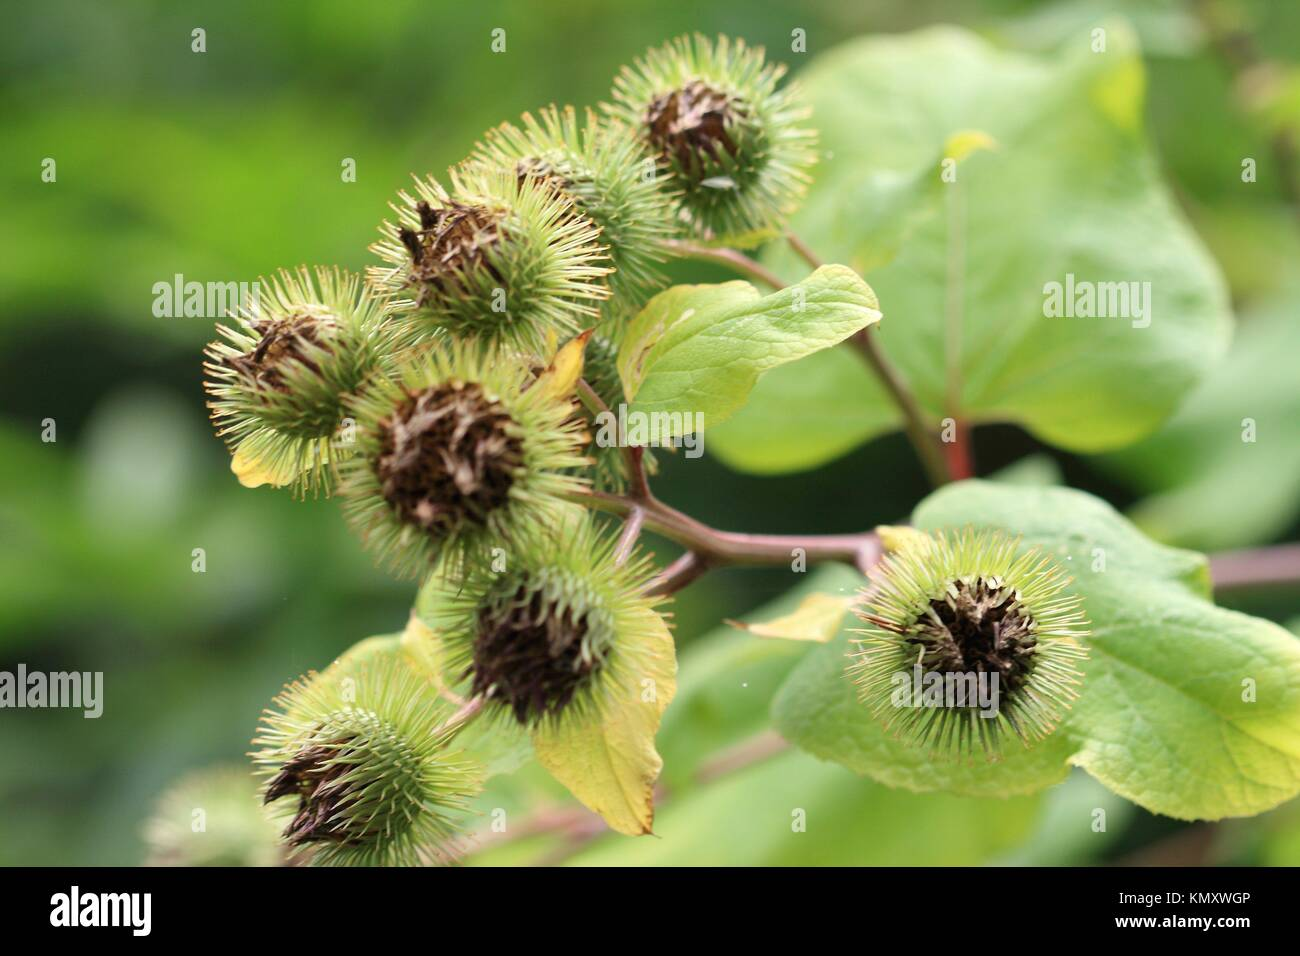 Burdock Arctium lappa or family, Asteraceae Biennial plant to flower which clings to clothing and hair of animals - Stock Image